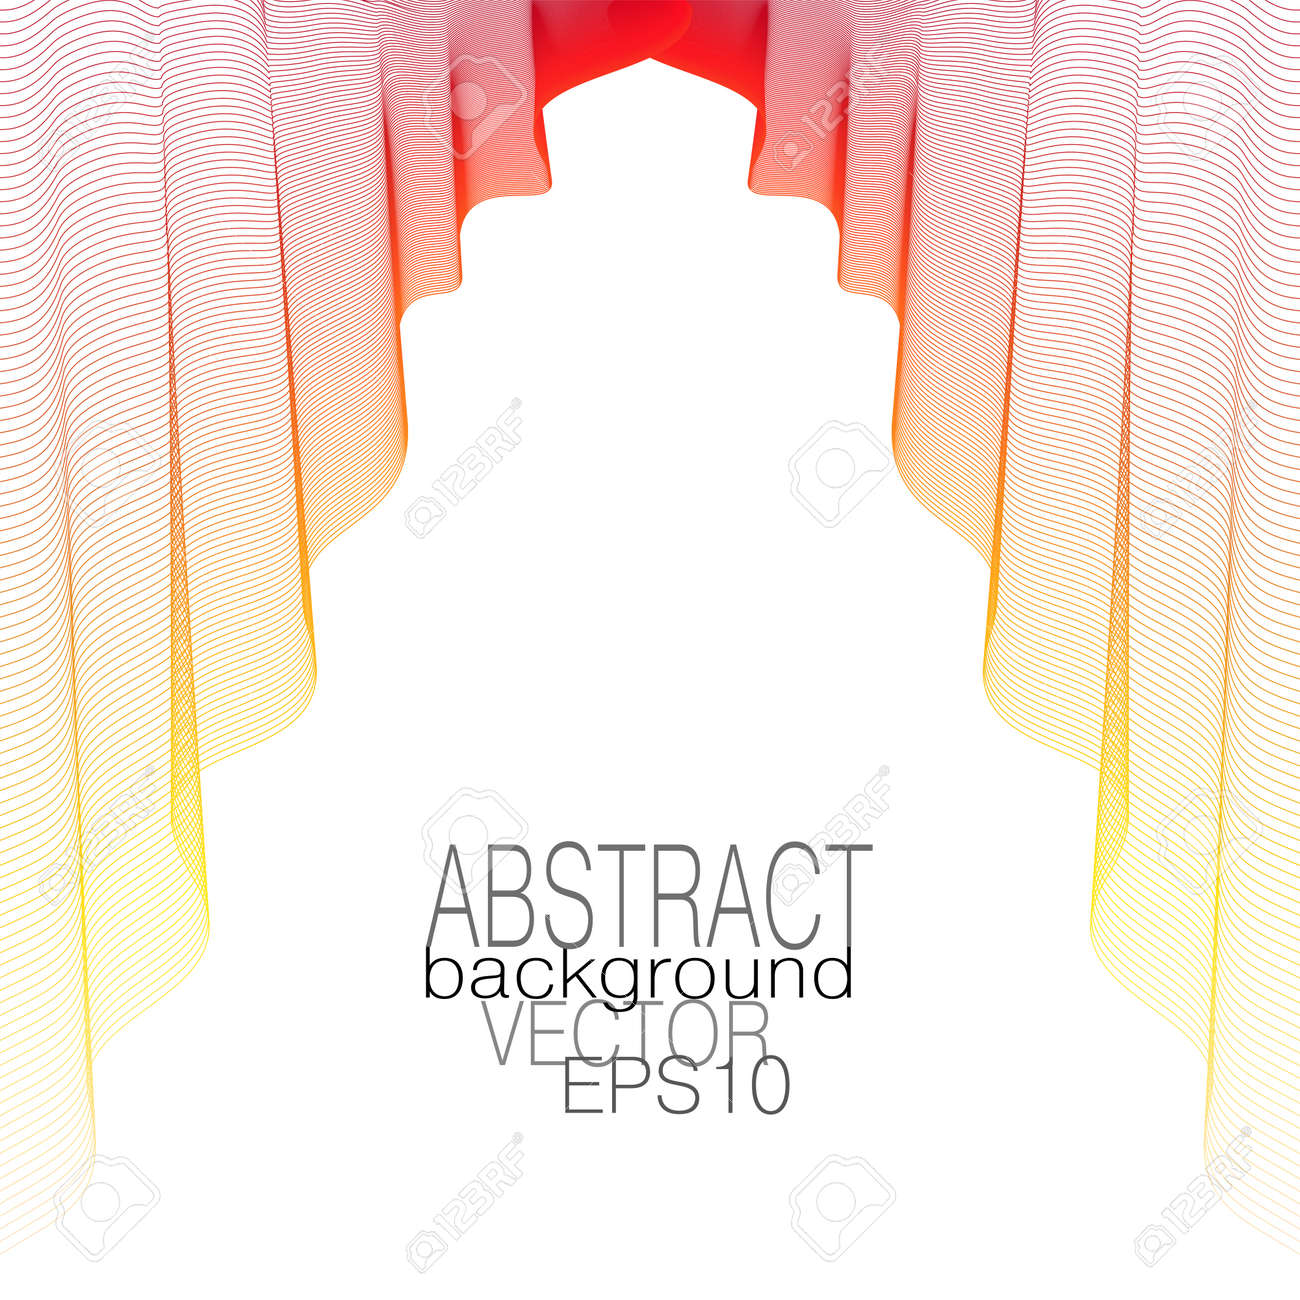 Bright red, yellow silk textile hangs down in elegant folds. Thin lightweight flowing fabric. Multicolored draped veil on a white background. Theater curtain concept. Line art design. Vector abstract pattern. Subtle curves. EPS10 illustration - 162016151